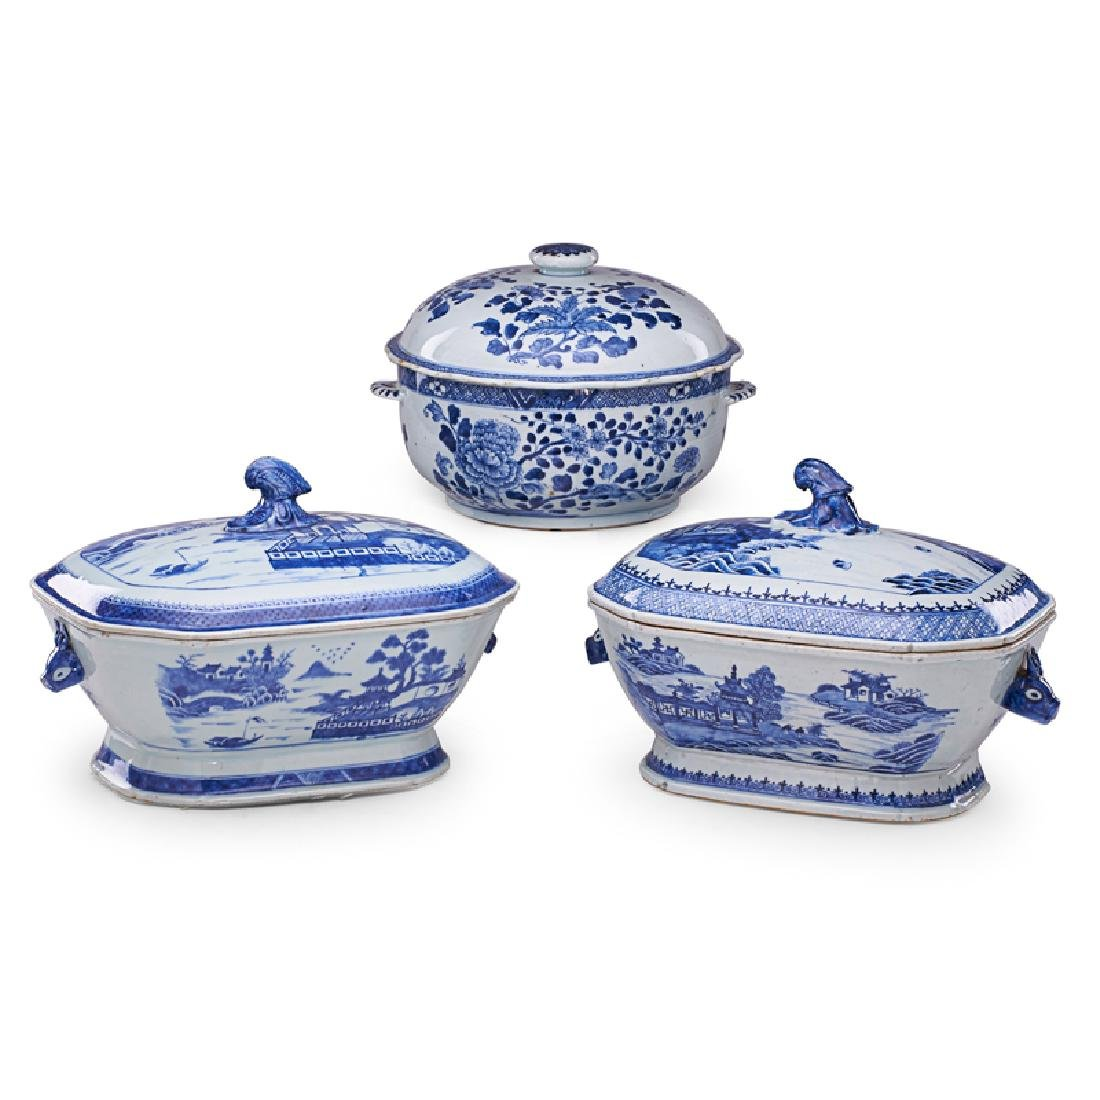 CHINESE EXPORT PORCELAIN COVERED DISHES